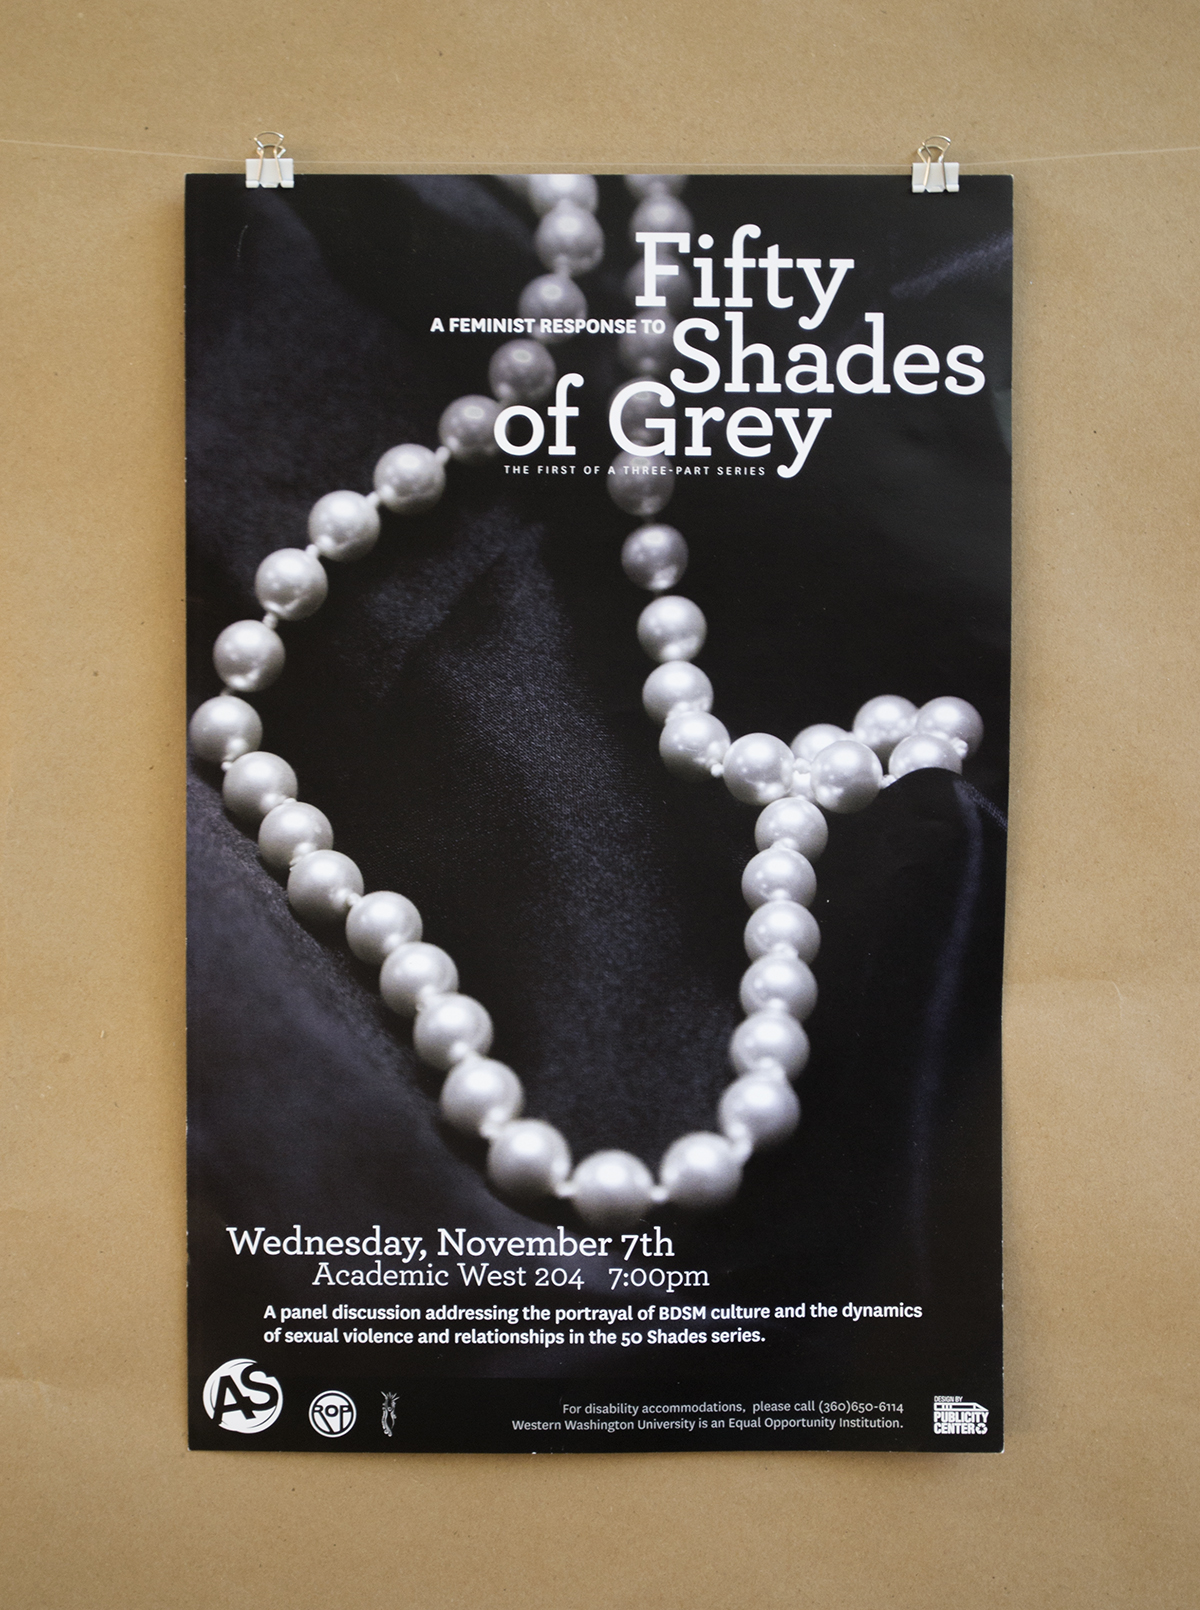 This Women's Center event was a huge hit on campus. The client was looking for a poster that looked like the current books. I chose a pearl necklace for the featured item because I felt that it both contrasted and complemented the tie of the original covers. Then I cleaned up the typography but retained a similar placement.